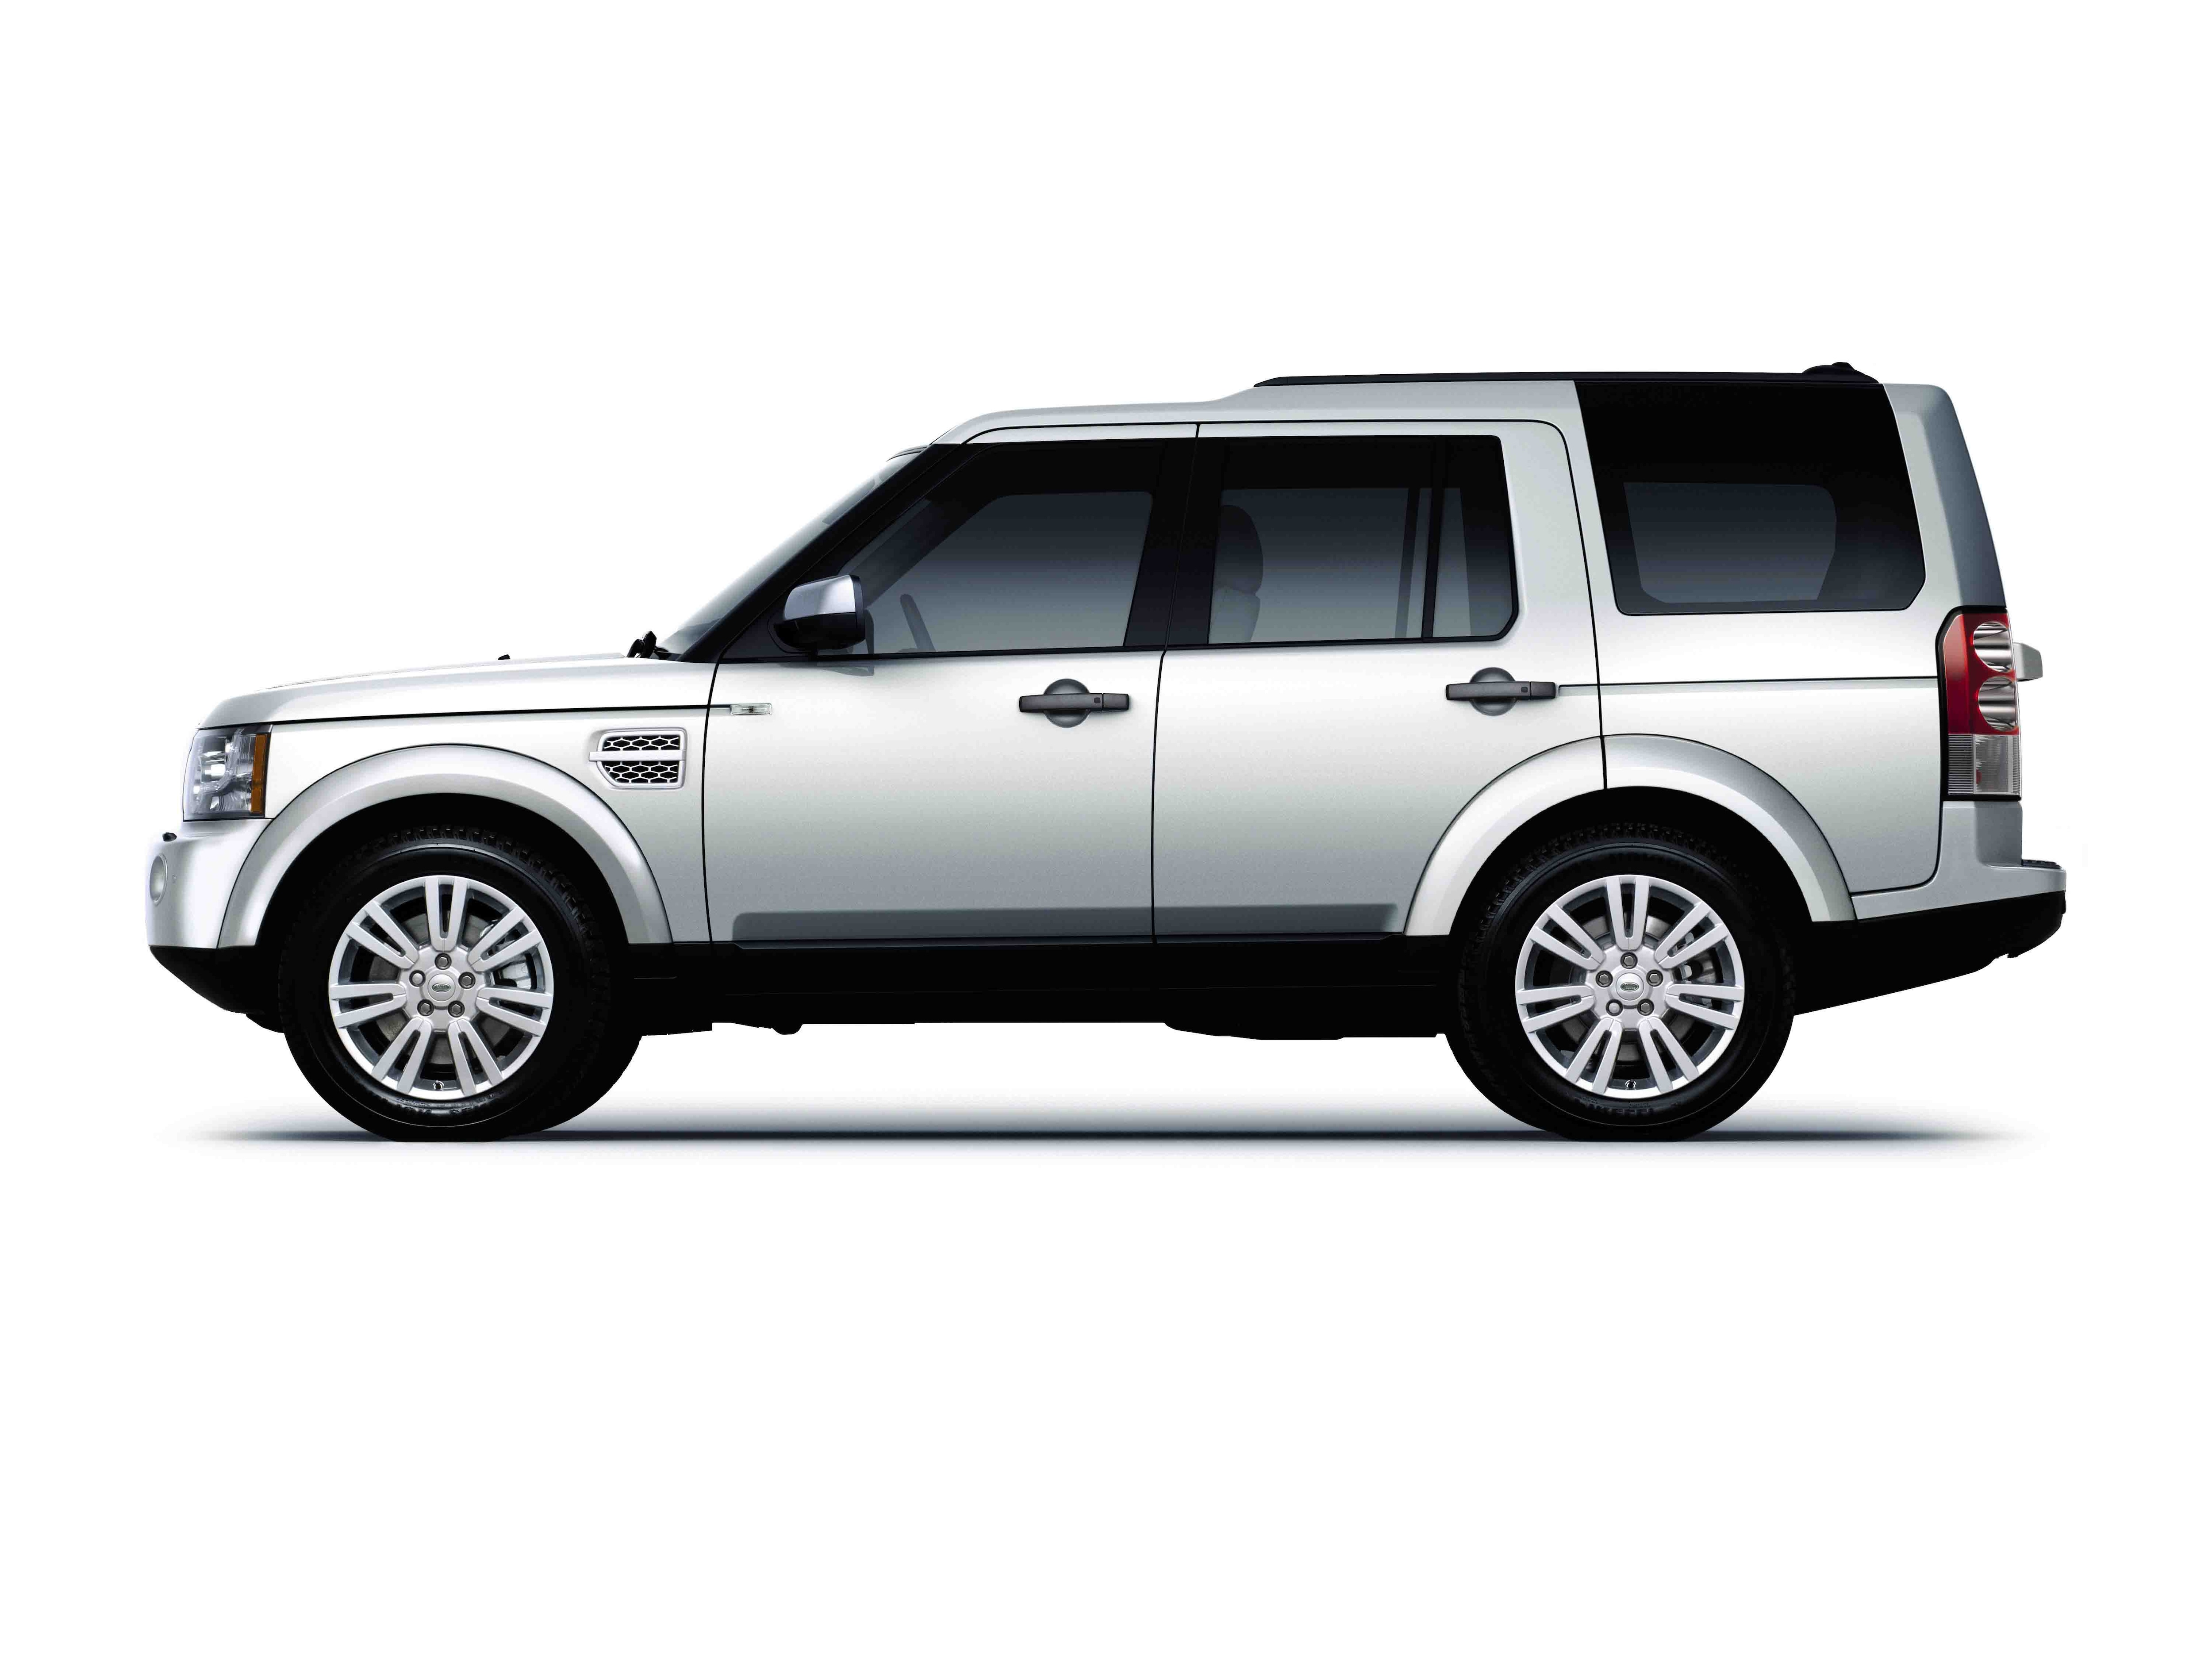 Land Rover Discovery 4 3 0l Tdv6 Hse Price In India